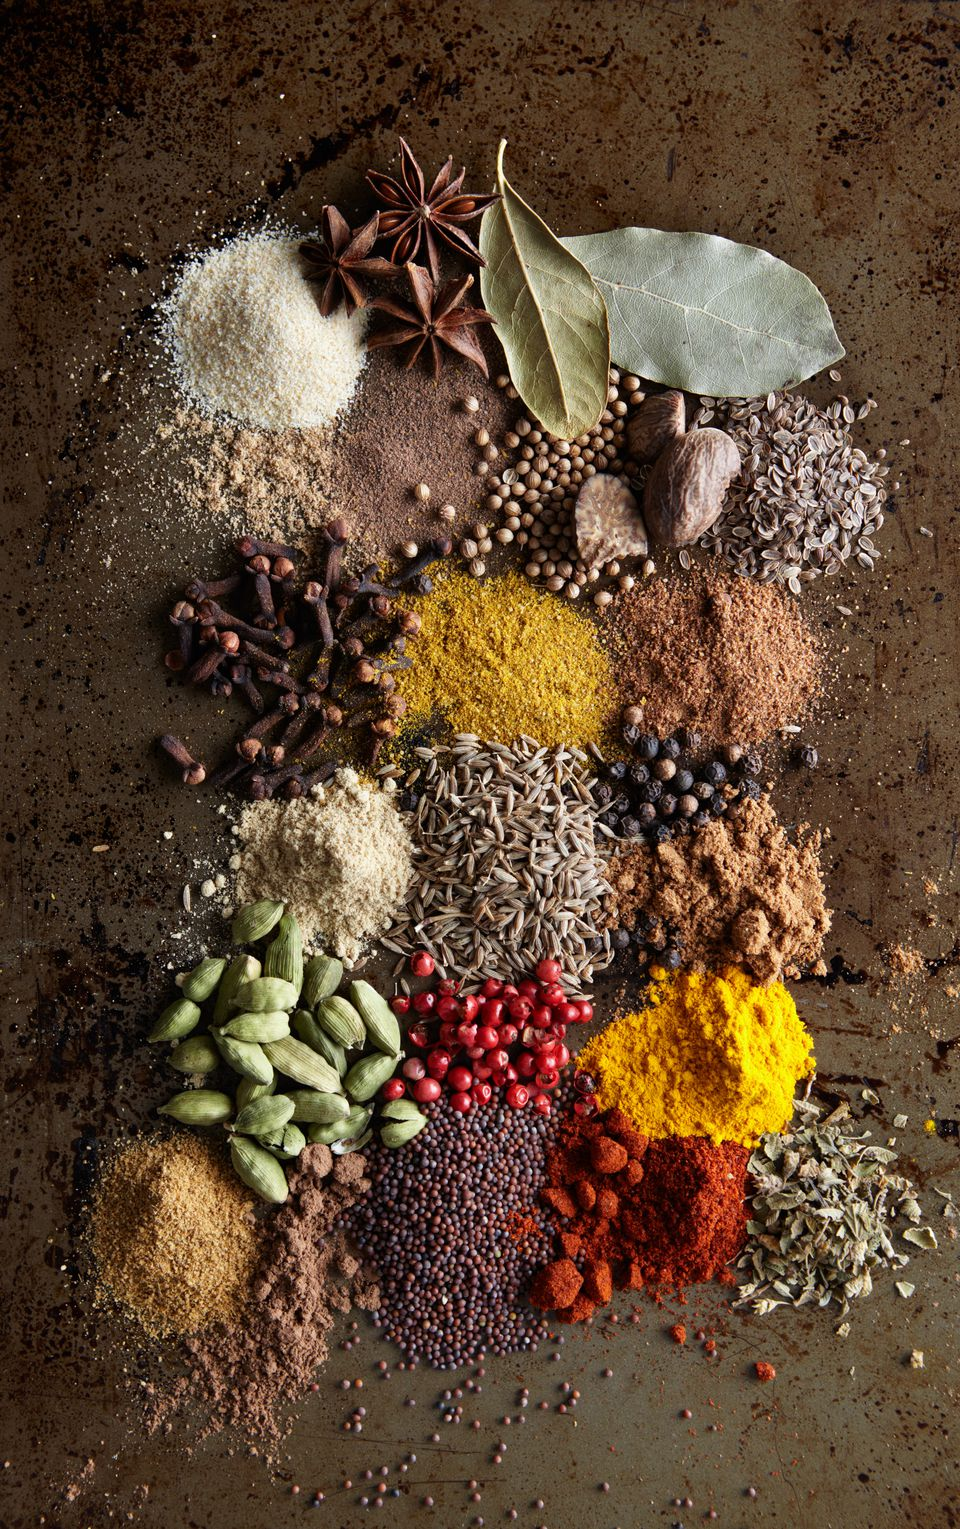 Piles of Various spices on metal surface